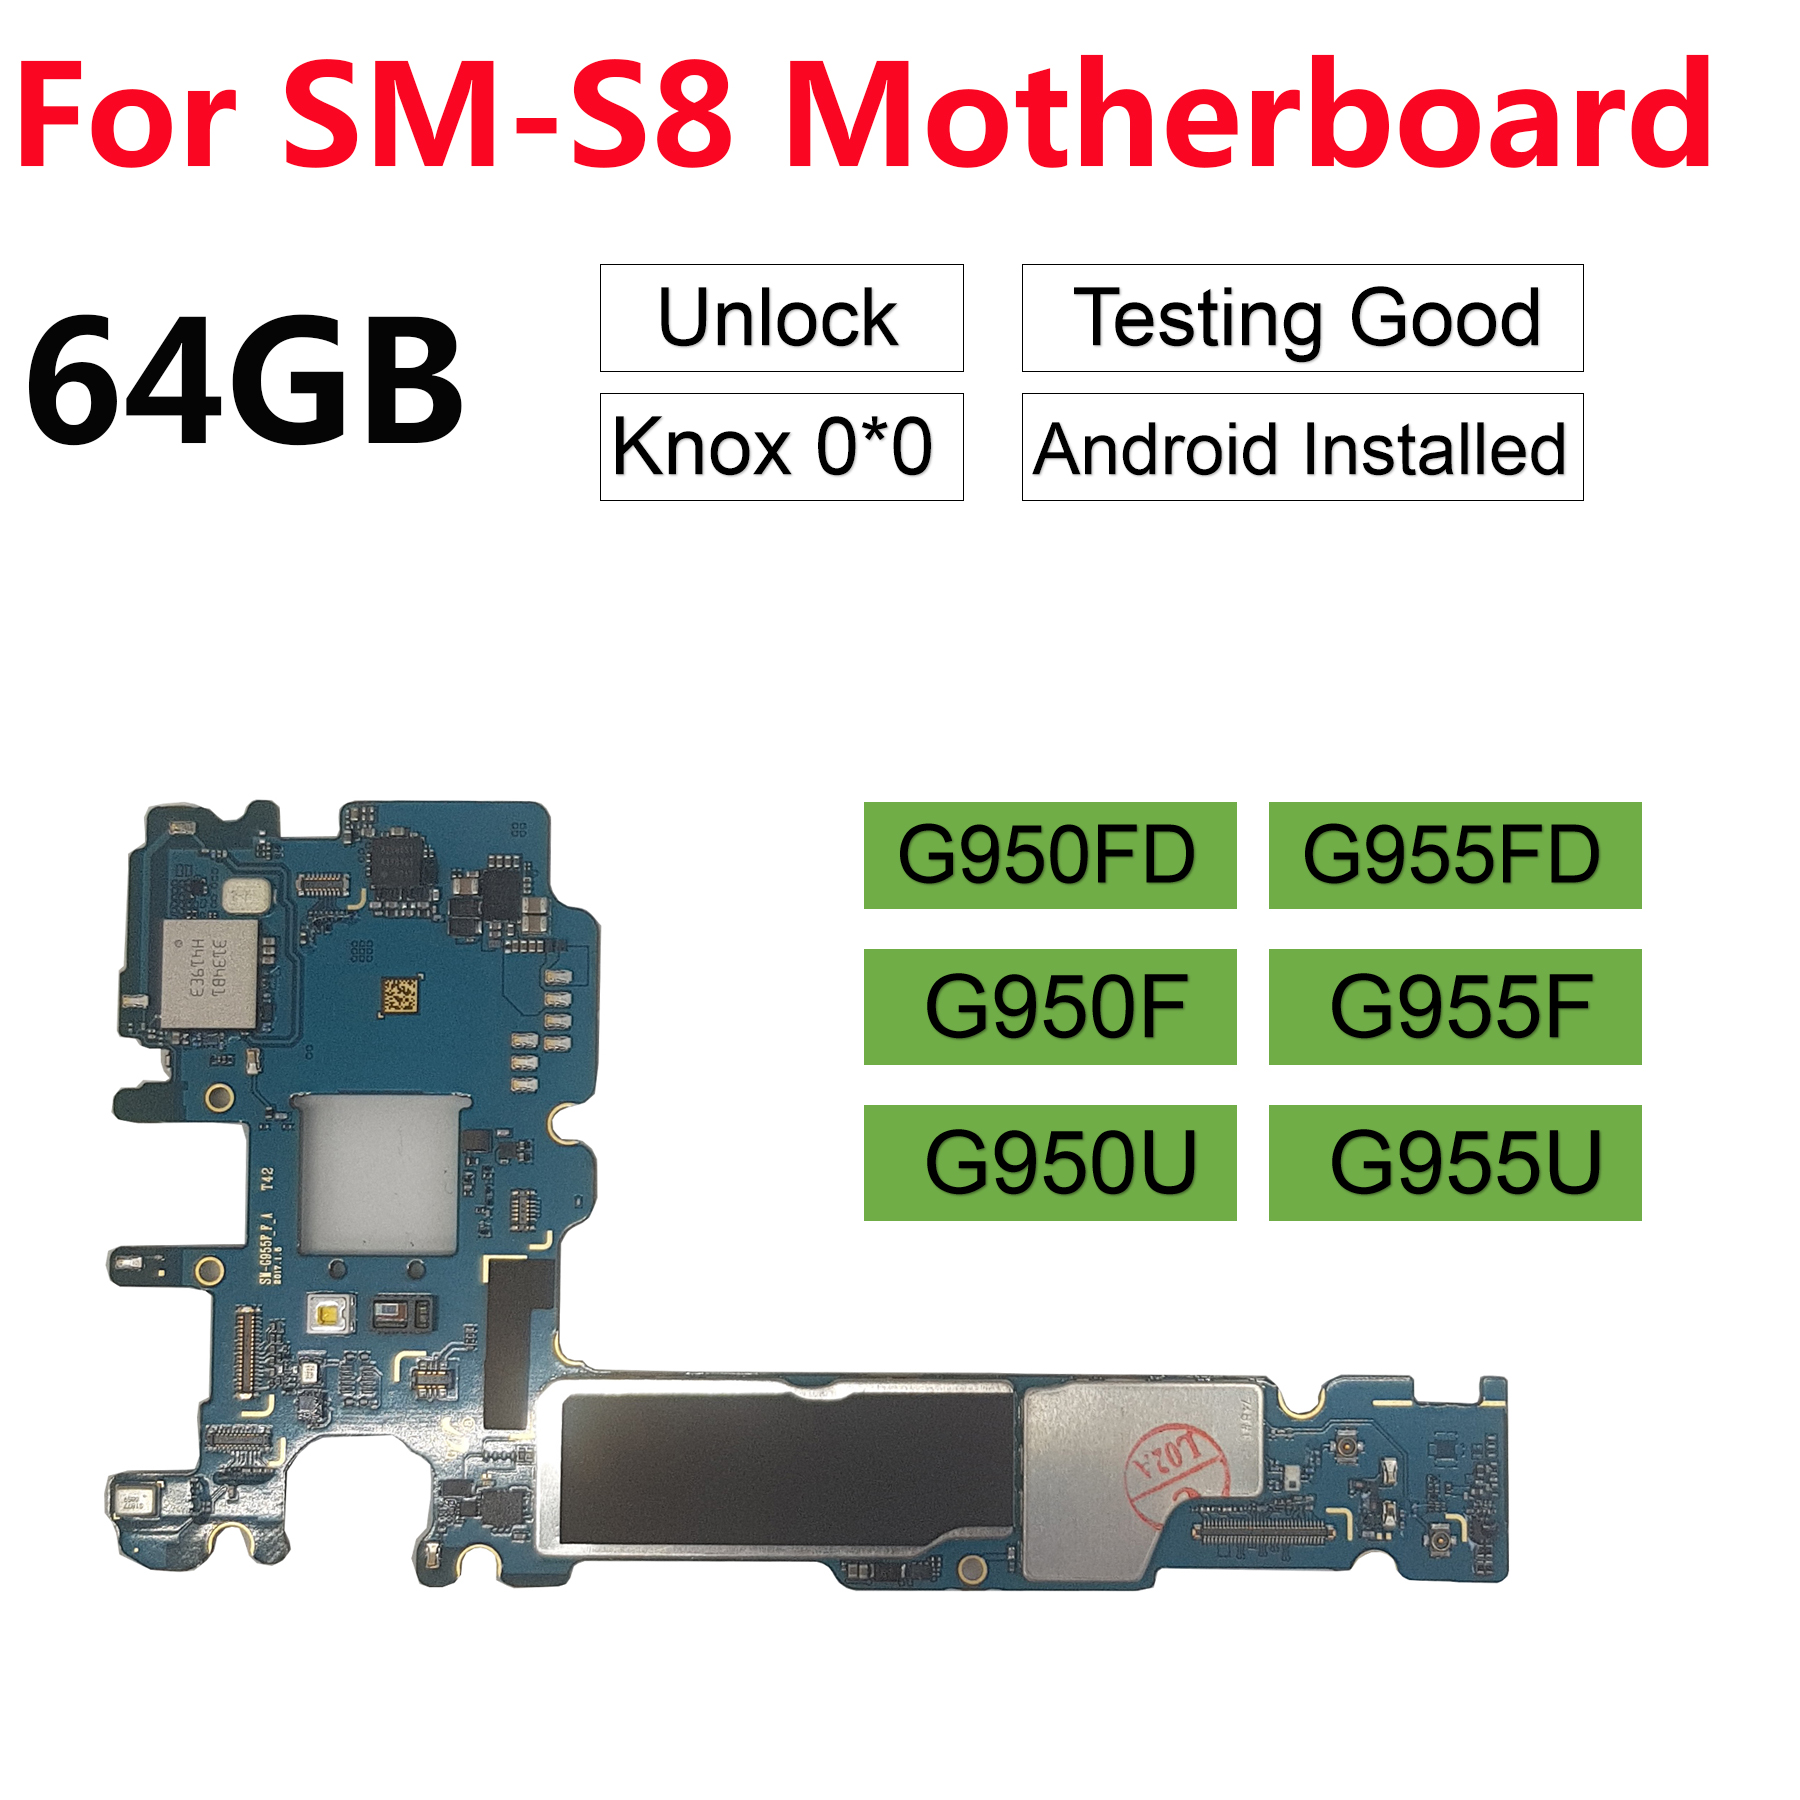 BINYEAE Original Unlocked Main Motherboard For Samsung Galaxy S8 Plus G955F G955FD S8 G950F G950U G950FD Unlock 64GB Motherboard